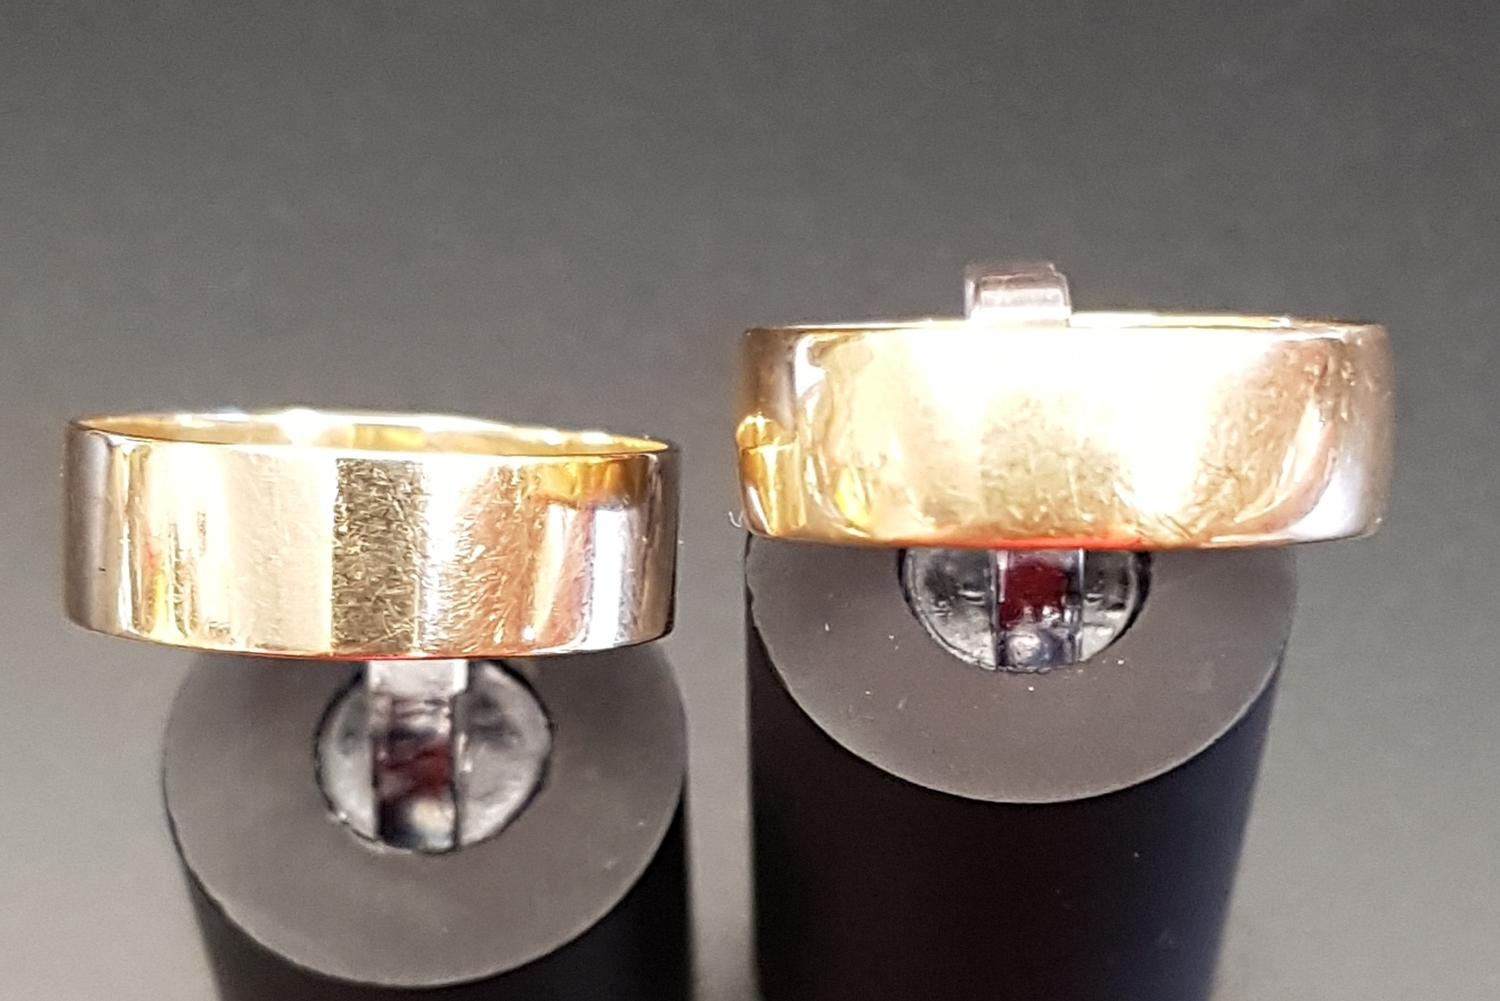 Lot 5 - TWO NINE CARAT GOLD WEDDING BANDS ring sizes T-U and U-V, total weight approximately 5.4 grams